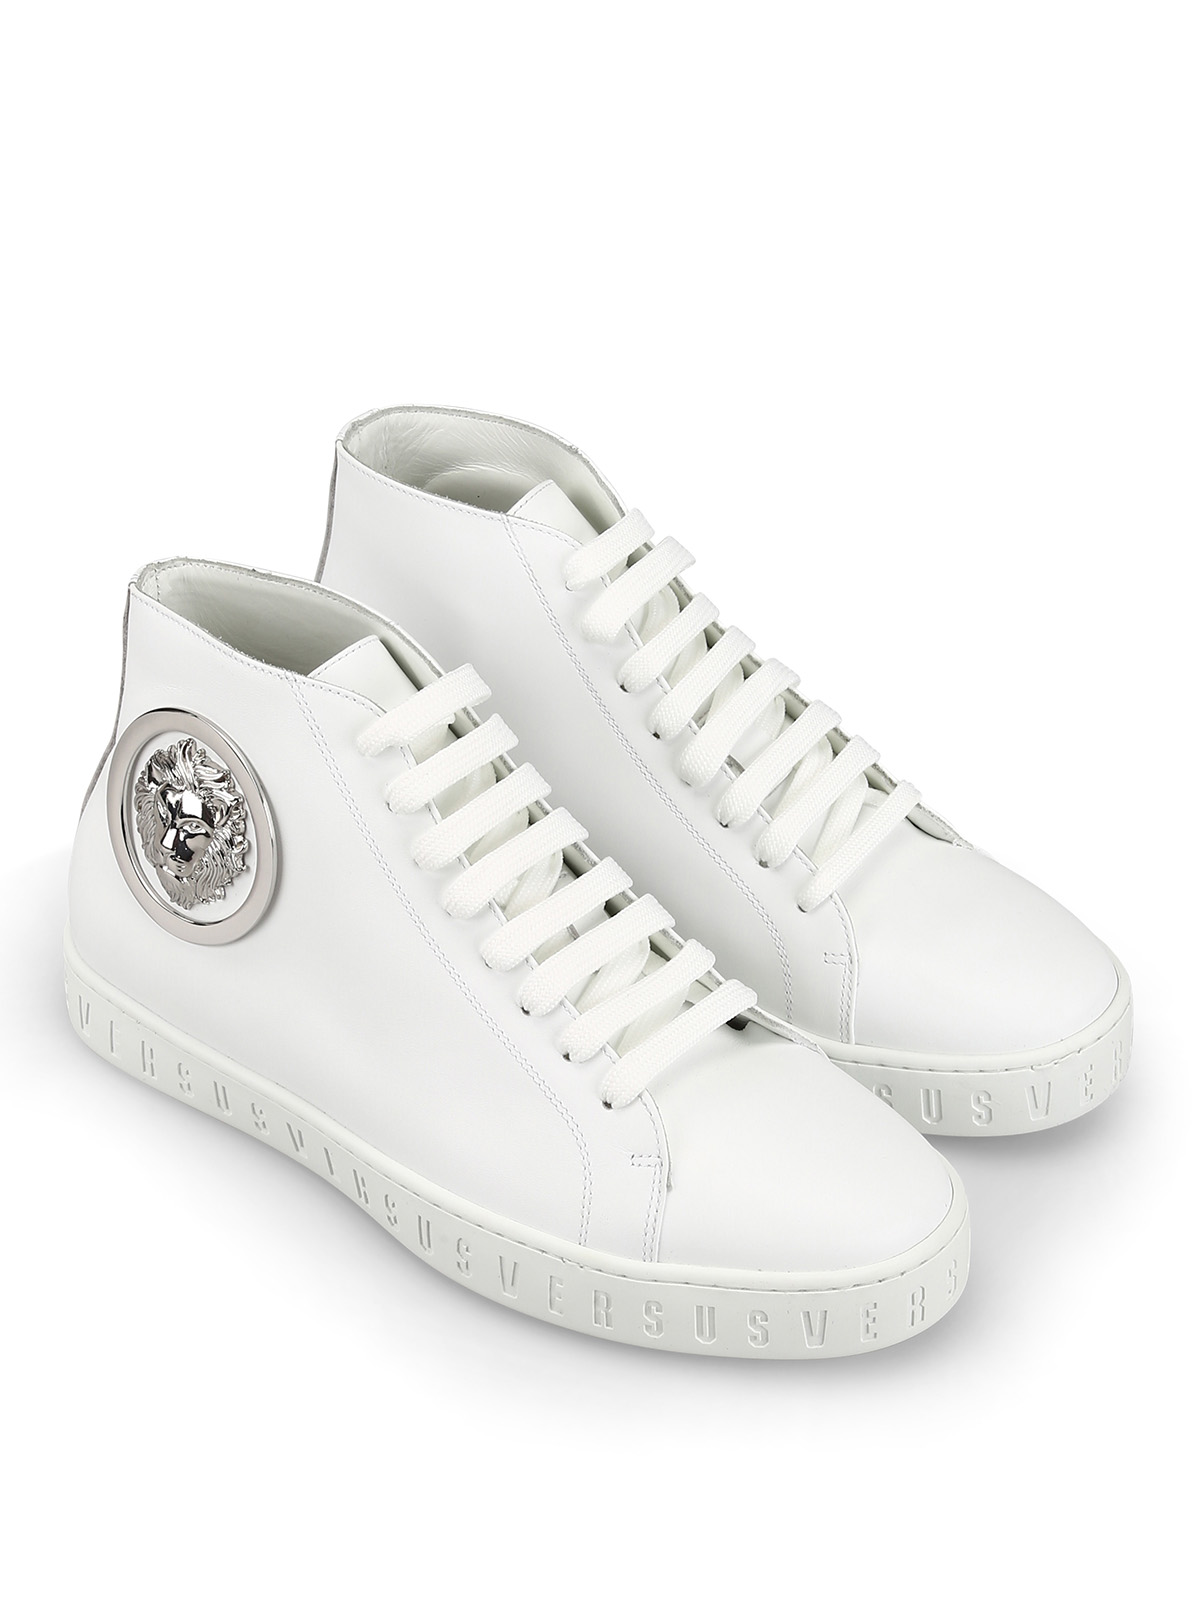 Versus Versace - Lion Head high top white leather sneakers ...